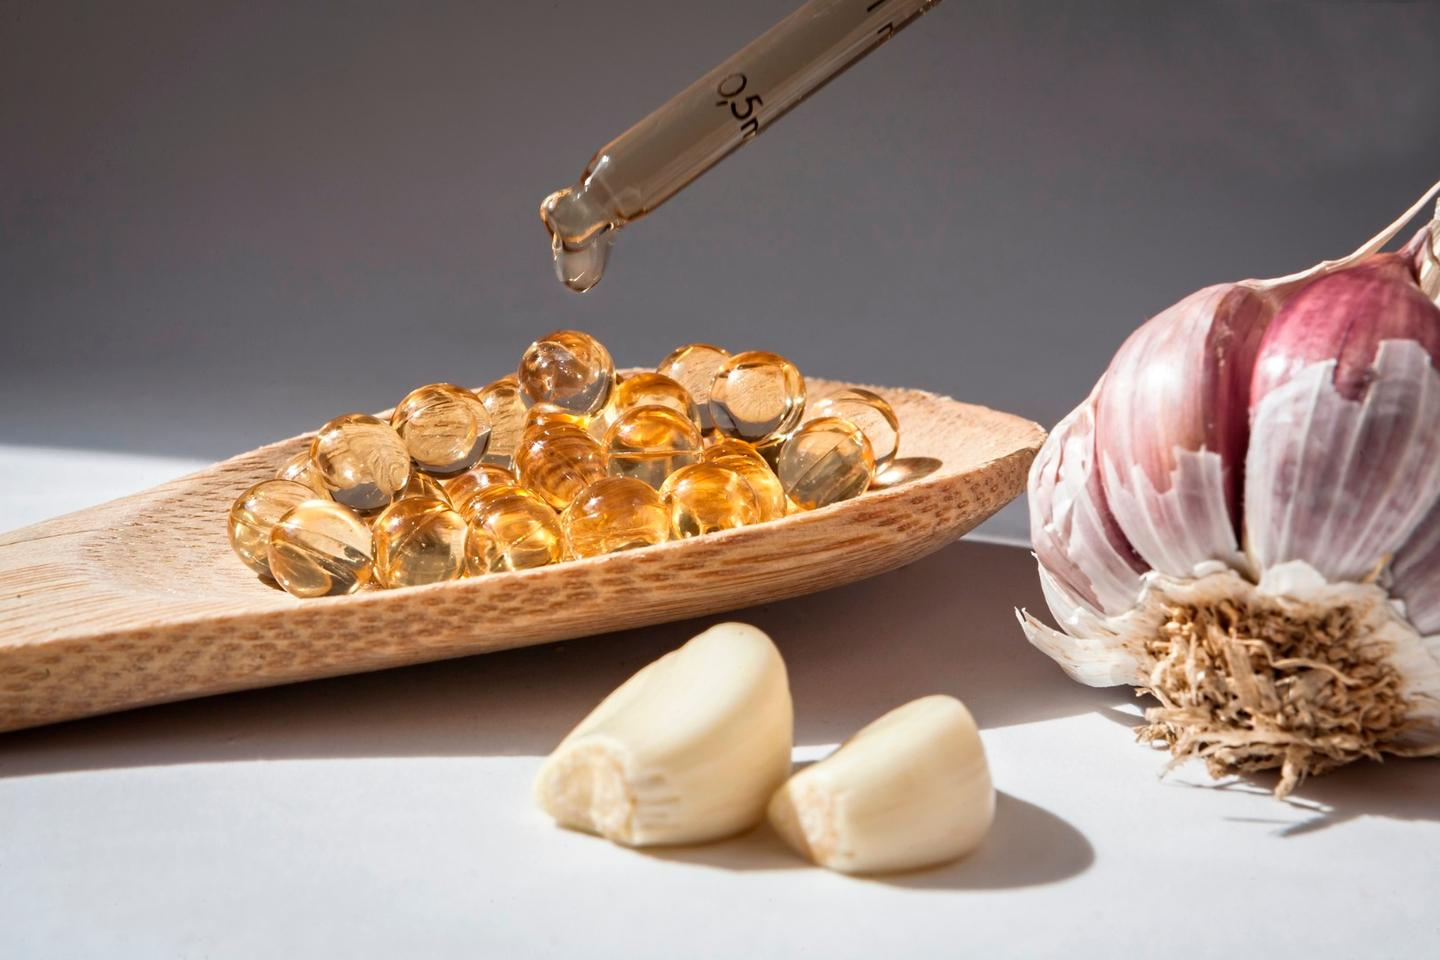 Researchers have found that some essential oils, such as garlic, may have antibiotic properties